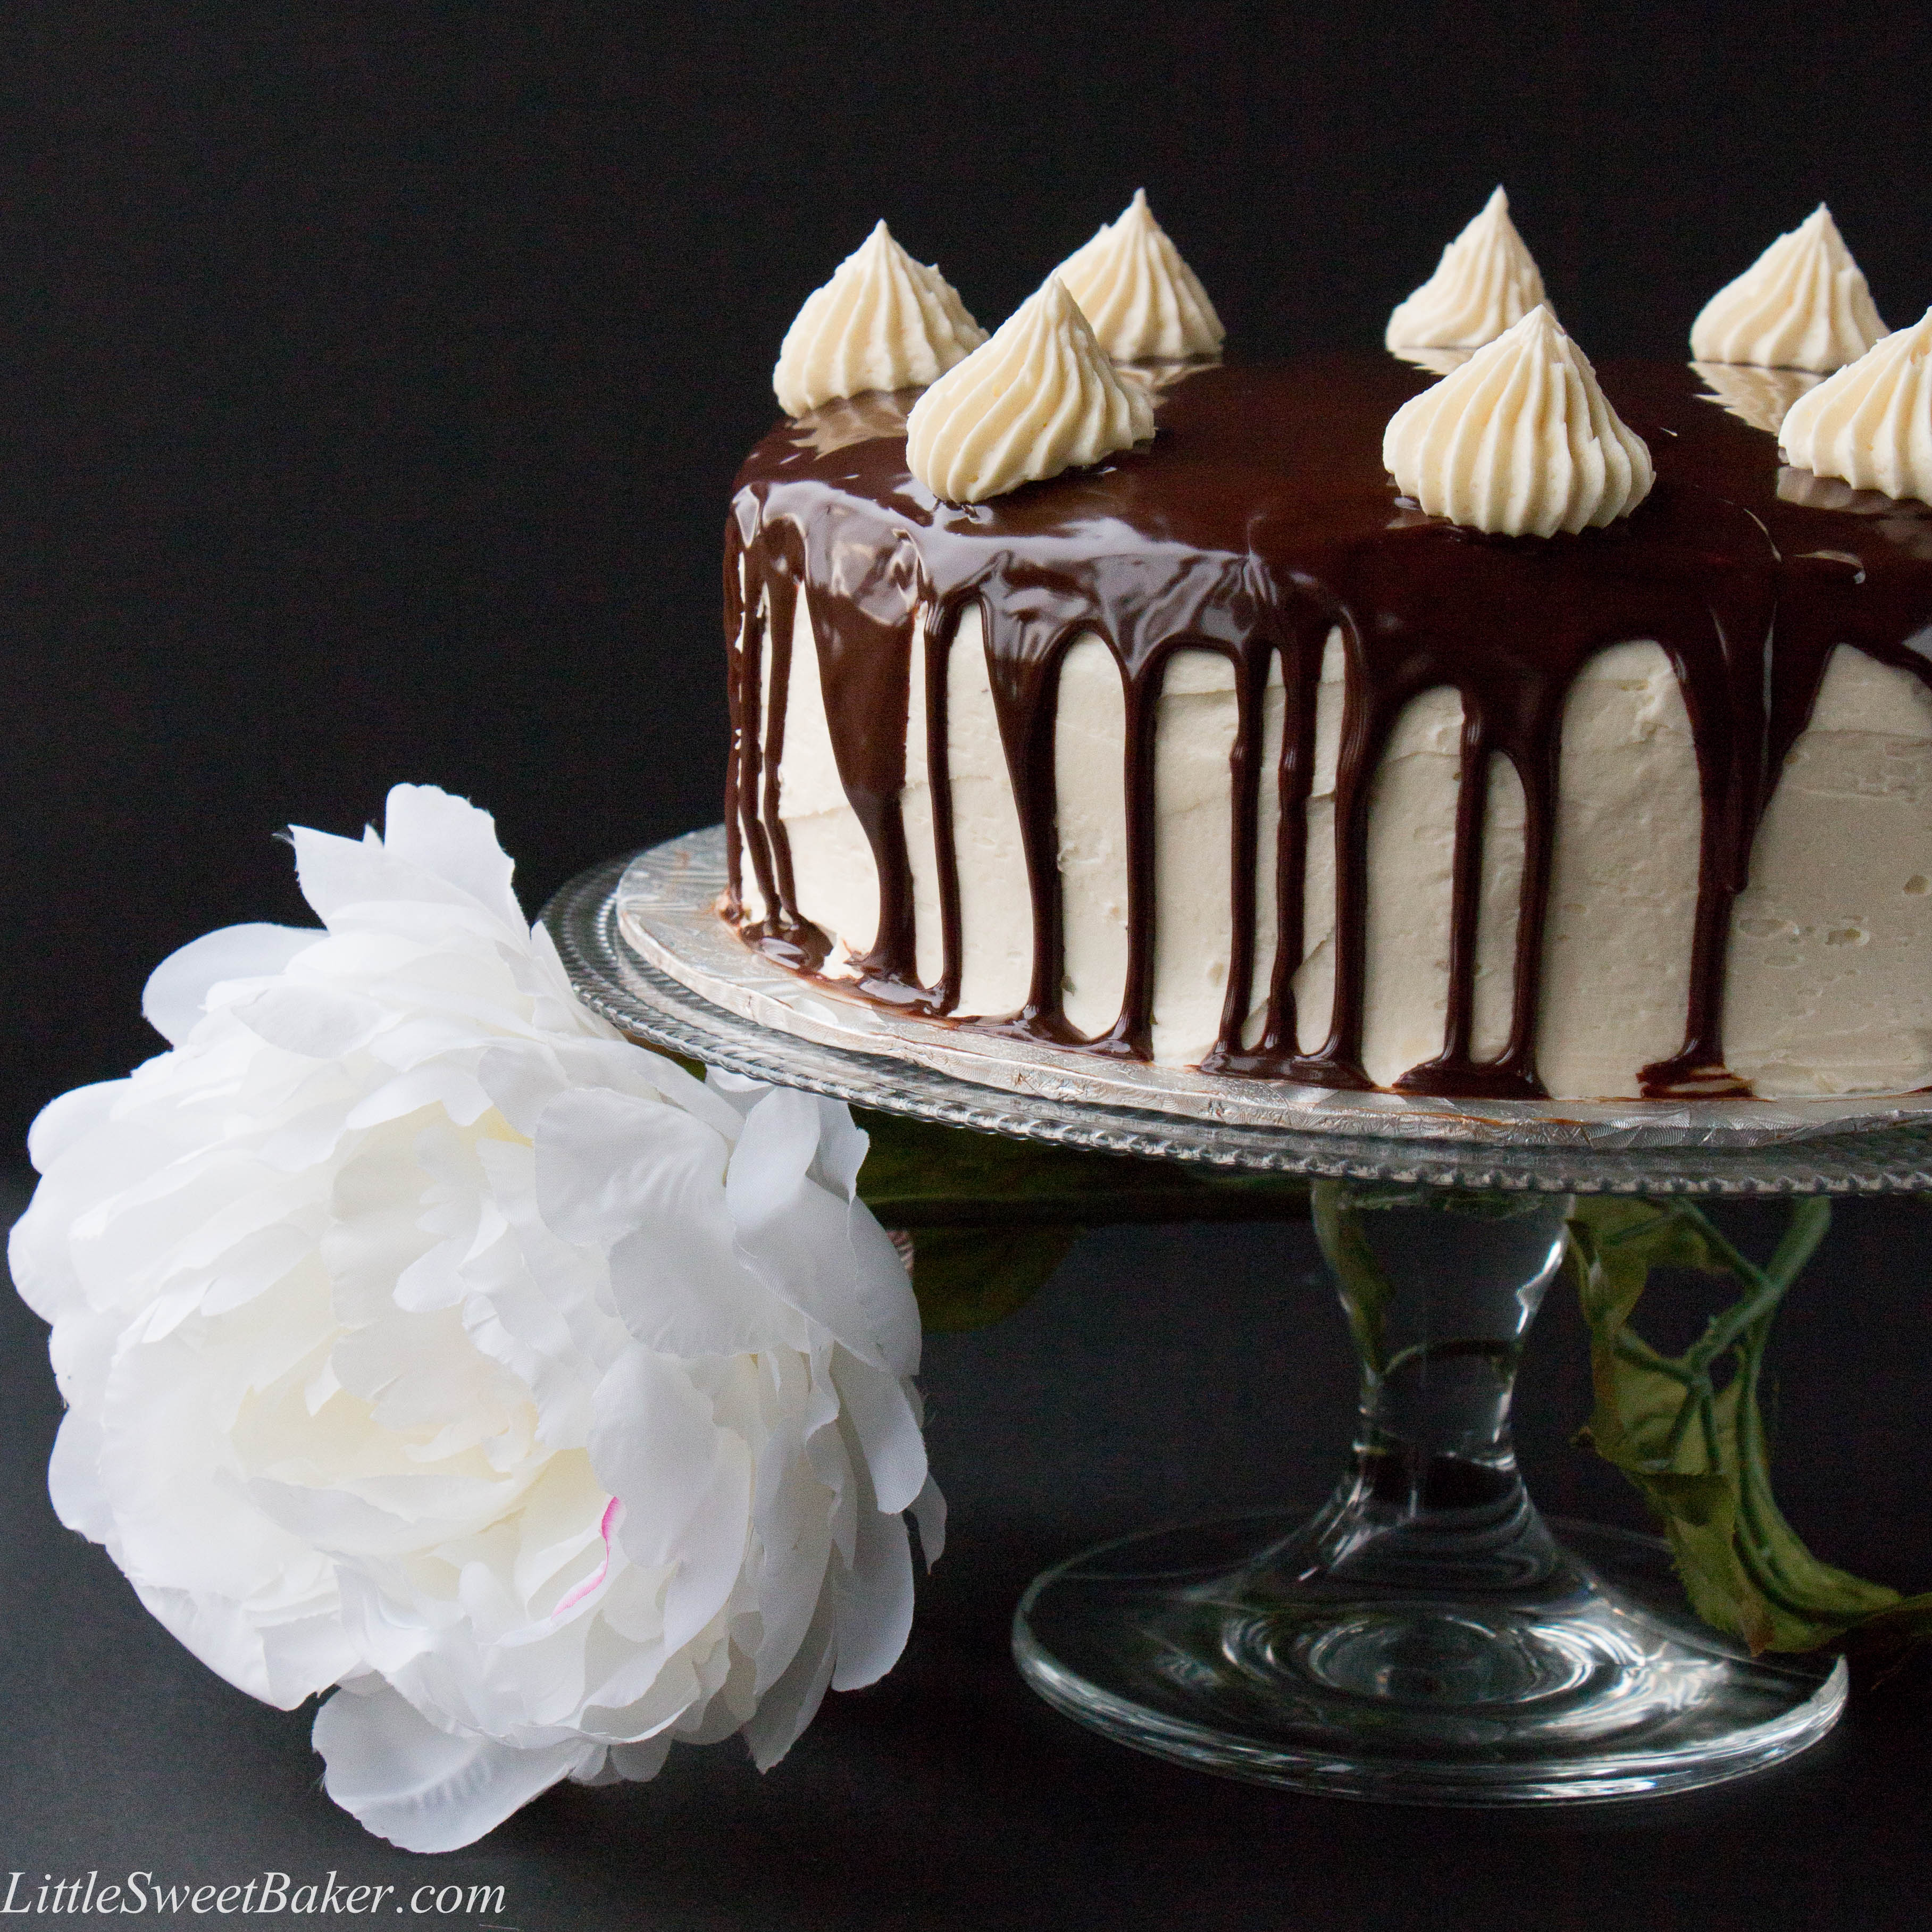 White Chocolate Ganache Cake Decorating Ideas : Triple Chocolate Shadow Cake - Little Sweet Baker